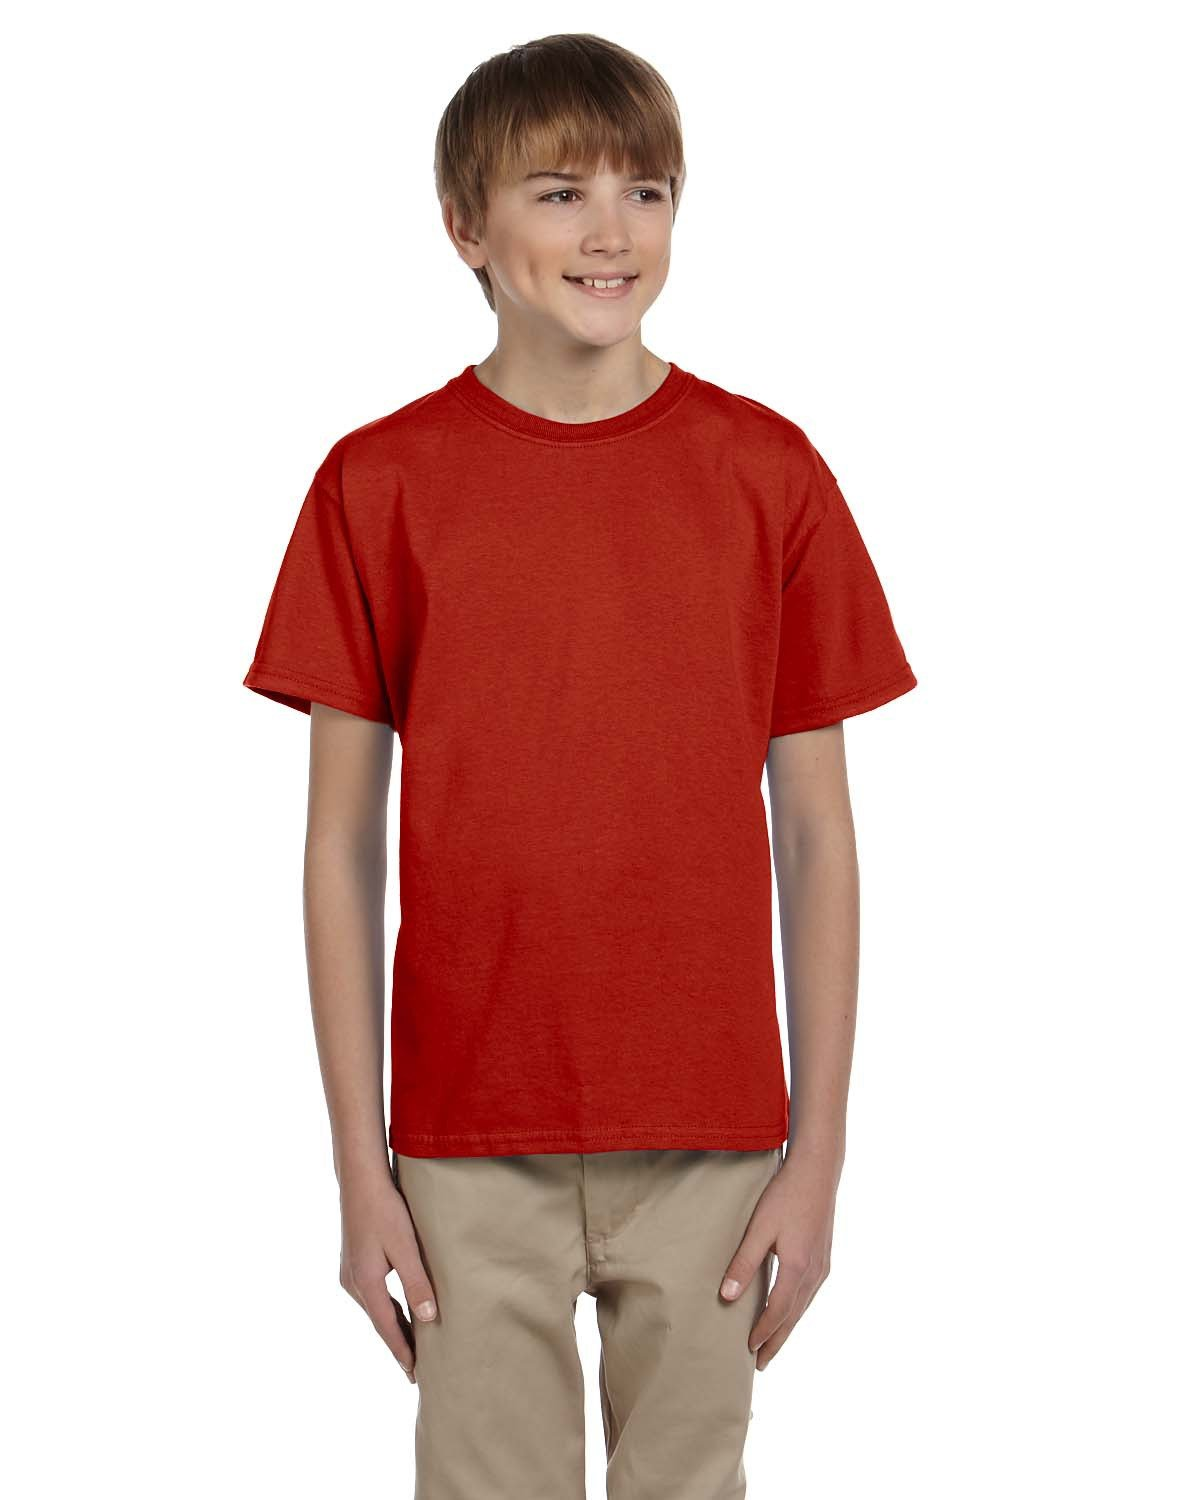 Hanes Youth 50/50 T-Shirt DEEP RED